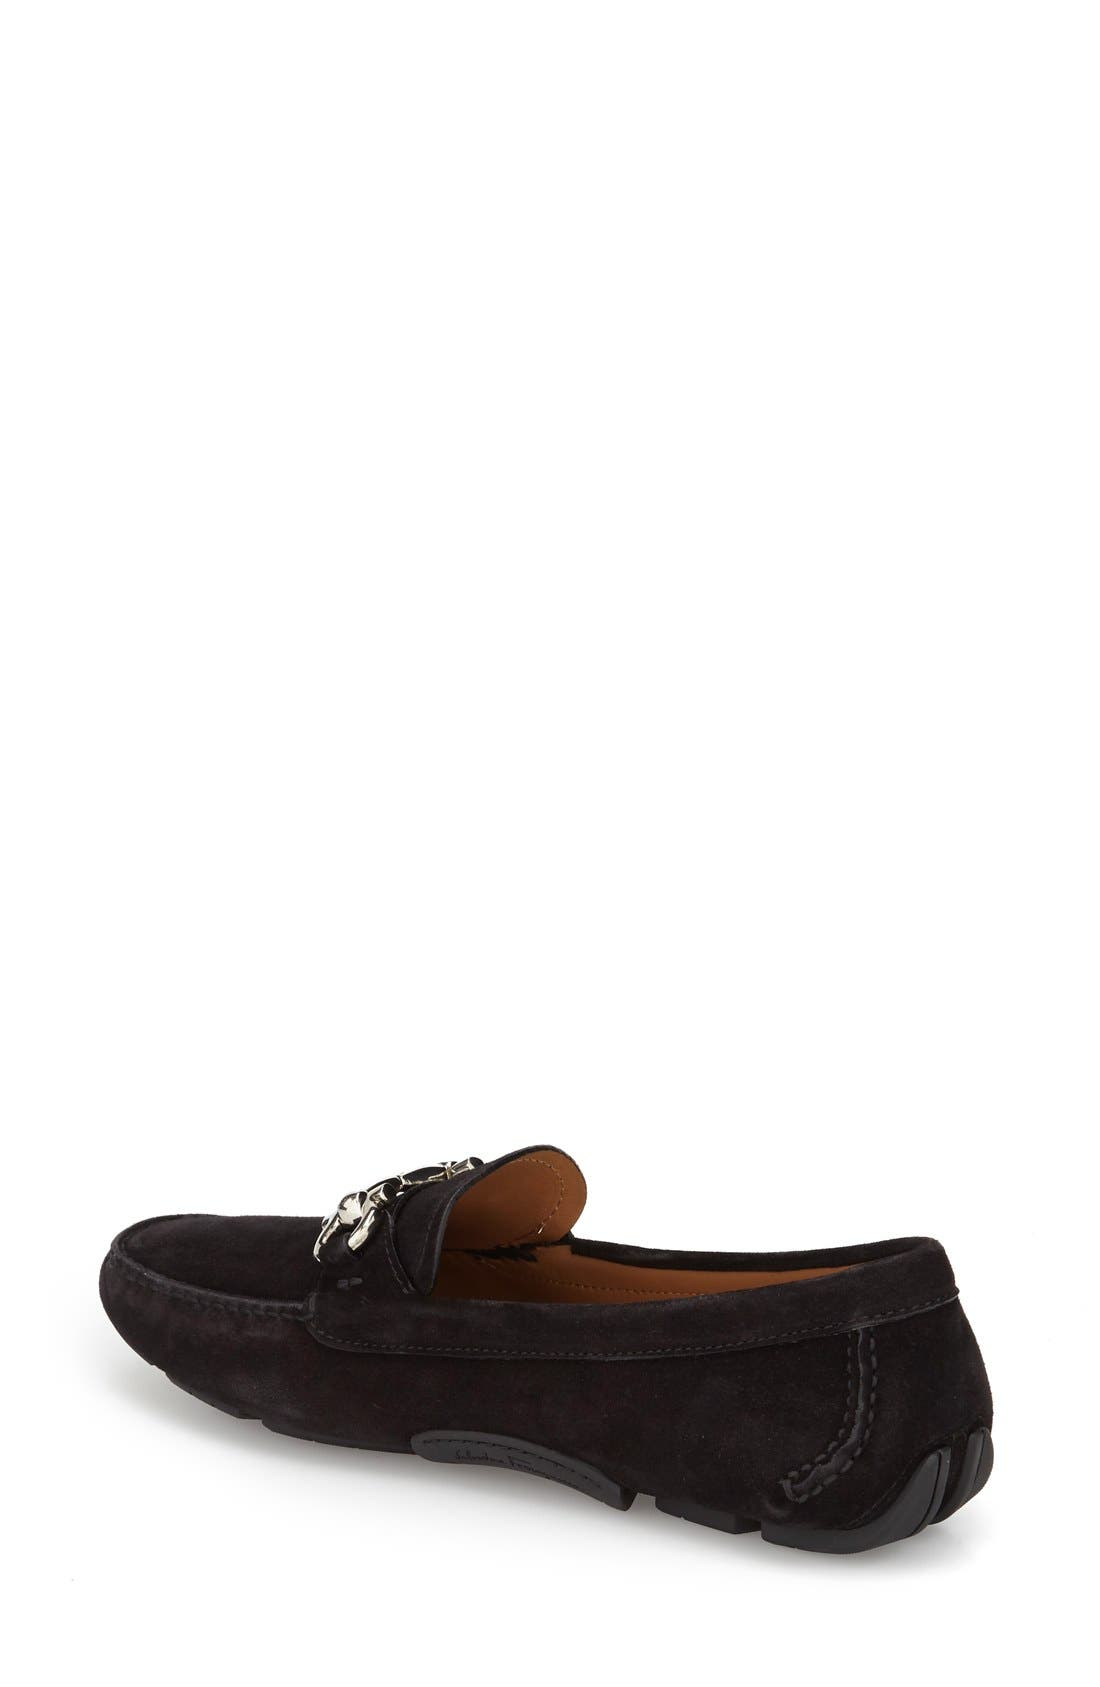 Parigi Loafer,                             Alternate thumbnail 16, color,